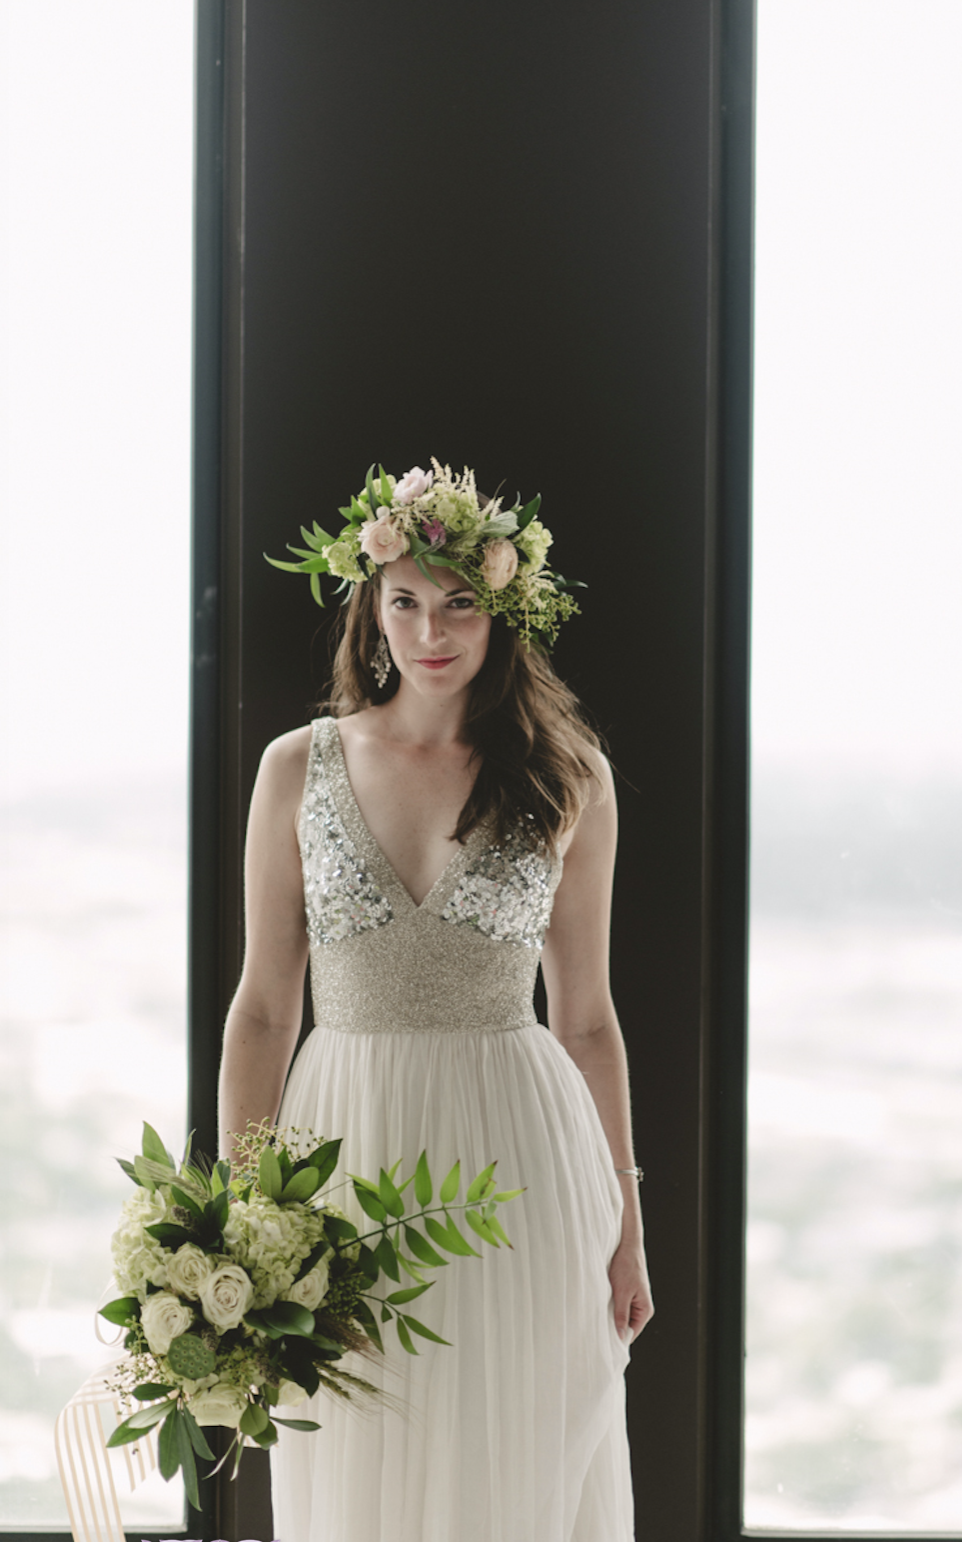 An all white/ivory bouquet is really popped by the colorful flower crown on this bride.